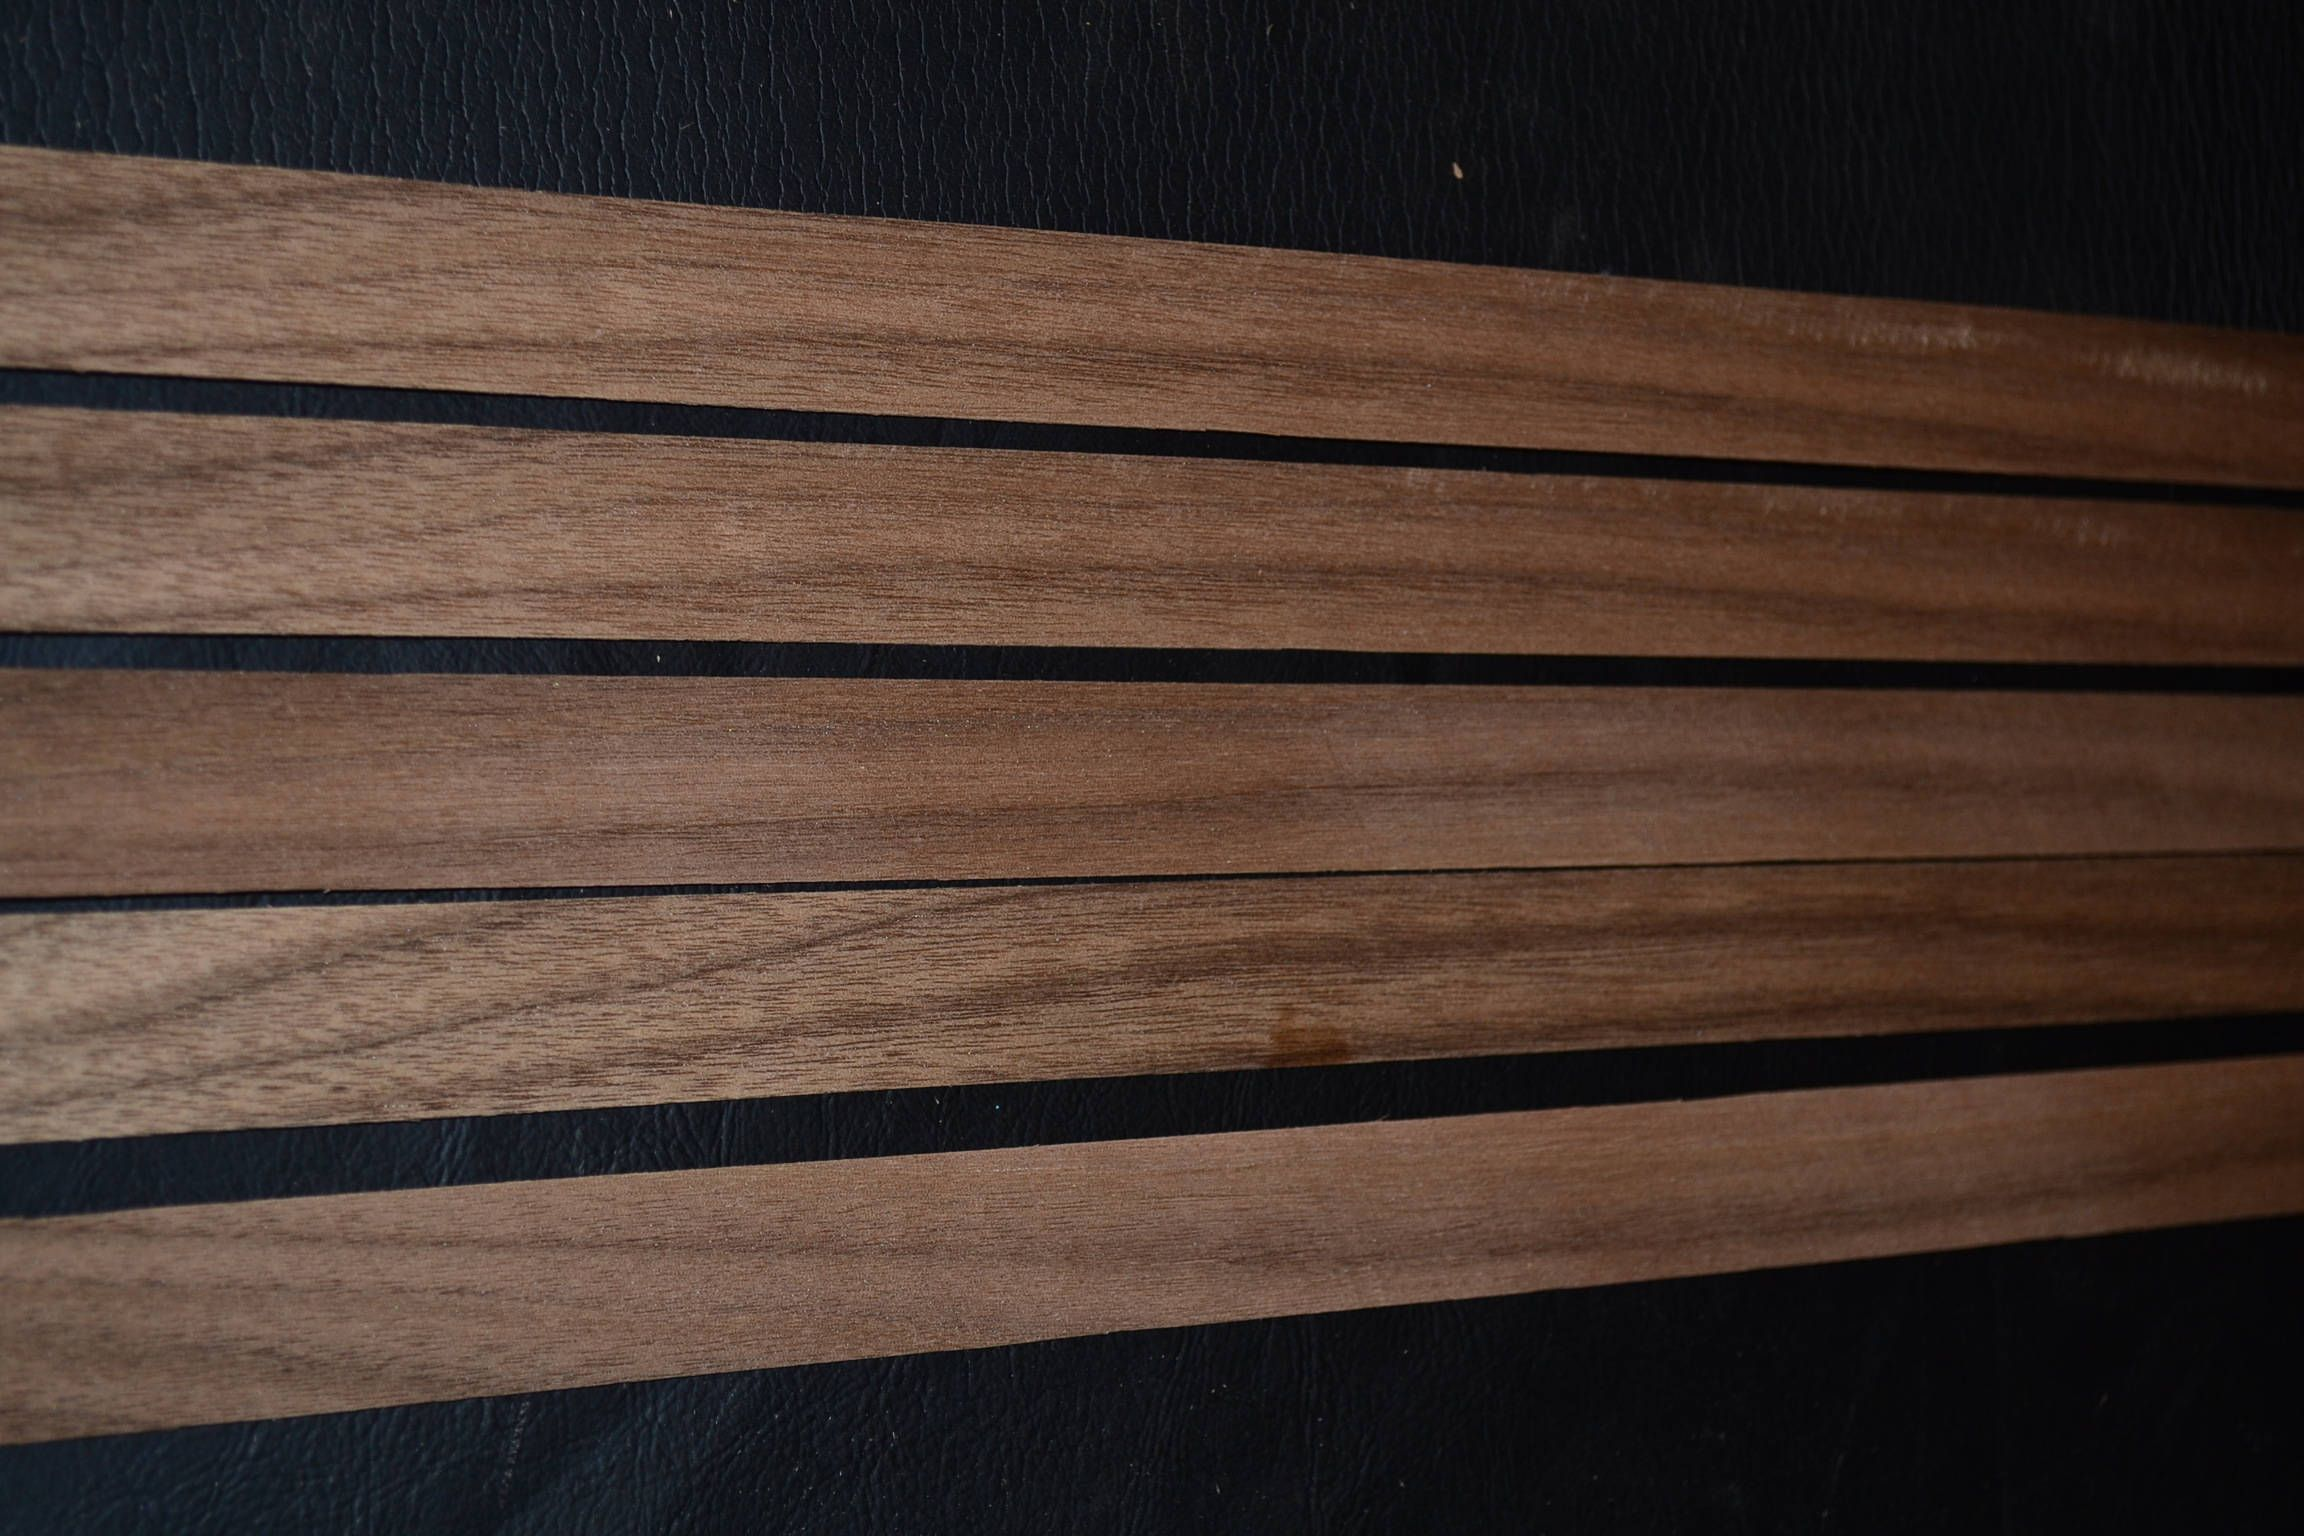 My Last Bundle Of This In Stock Etsy Shop Walnut Raw Wood Veneer Strips 15 Pieces 1 X 35 Inches 1 42nd Or 6mm T Wood Veneer Sheets Wood Scraps Wood Veneer